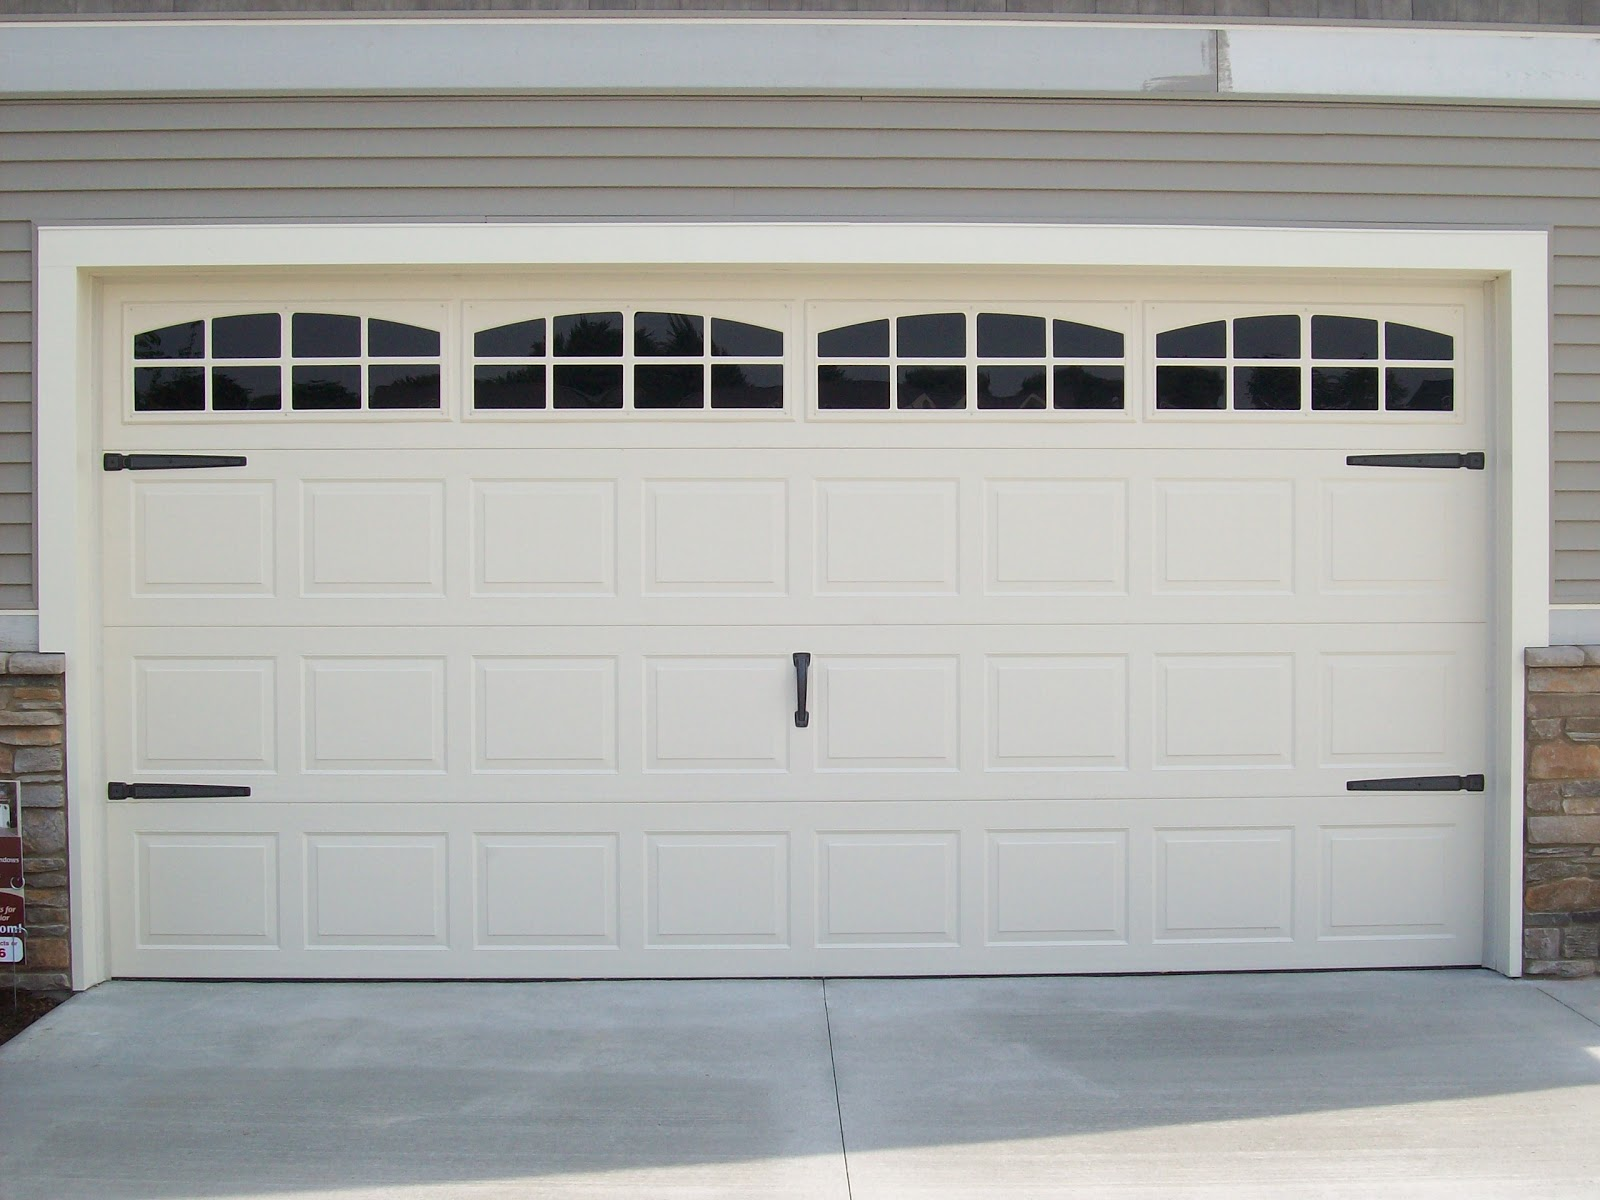 1200 #776D54  House Accents: Makeover Your Garage Door With Coach House Accents wallpaper Gurage Doors 37951600